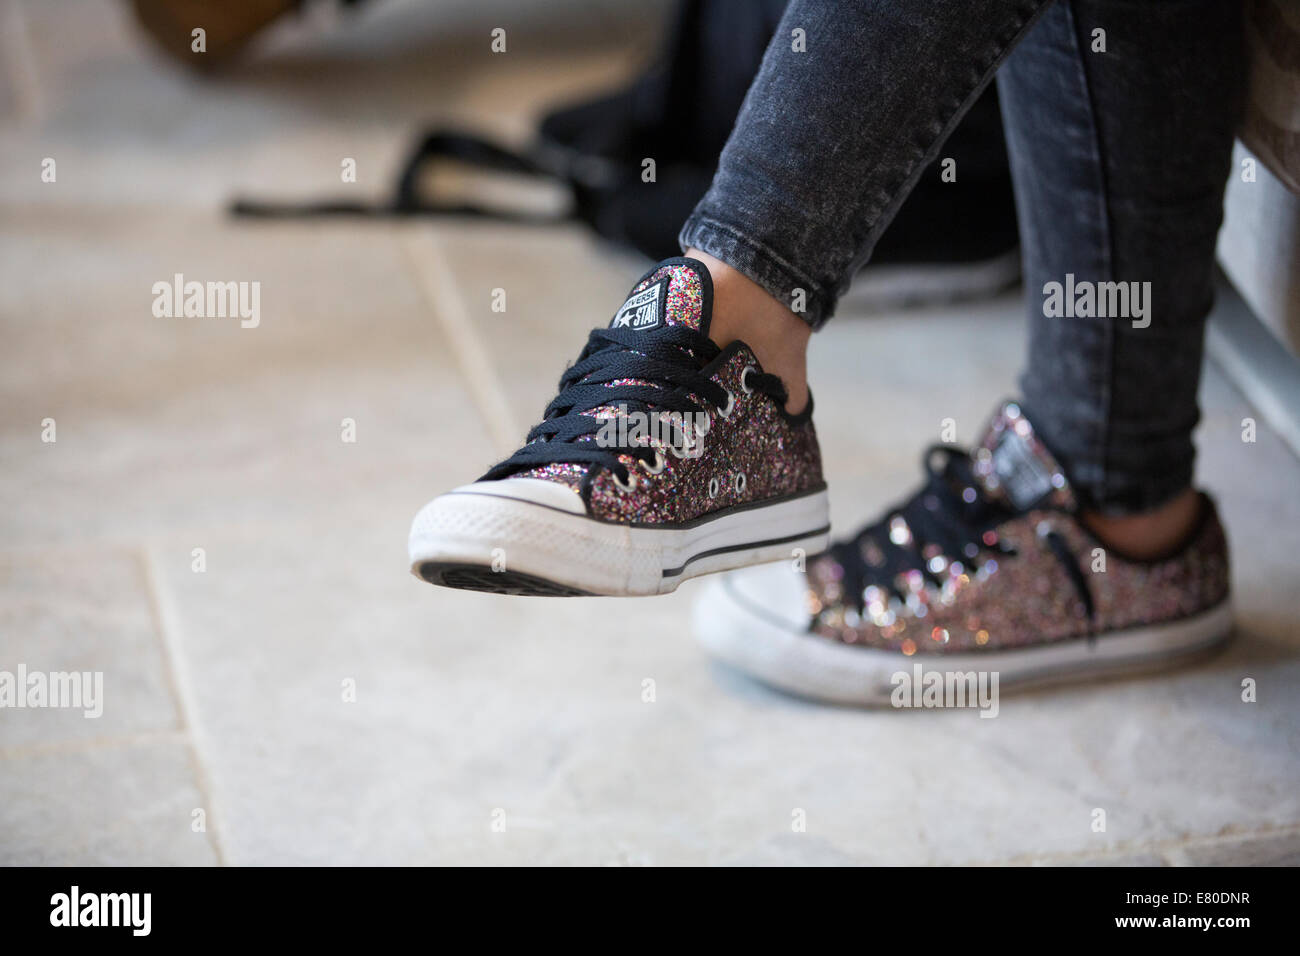 Young mother wearing Converse trainers - Stock Image